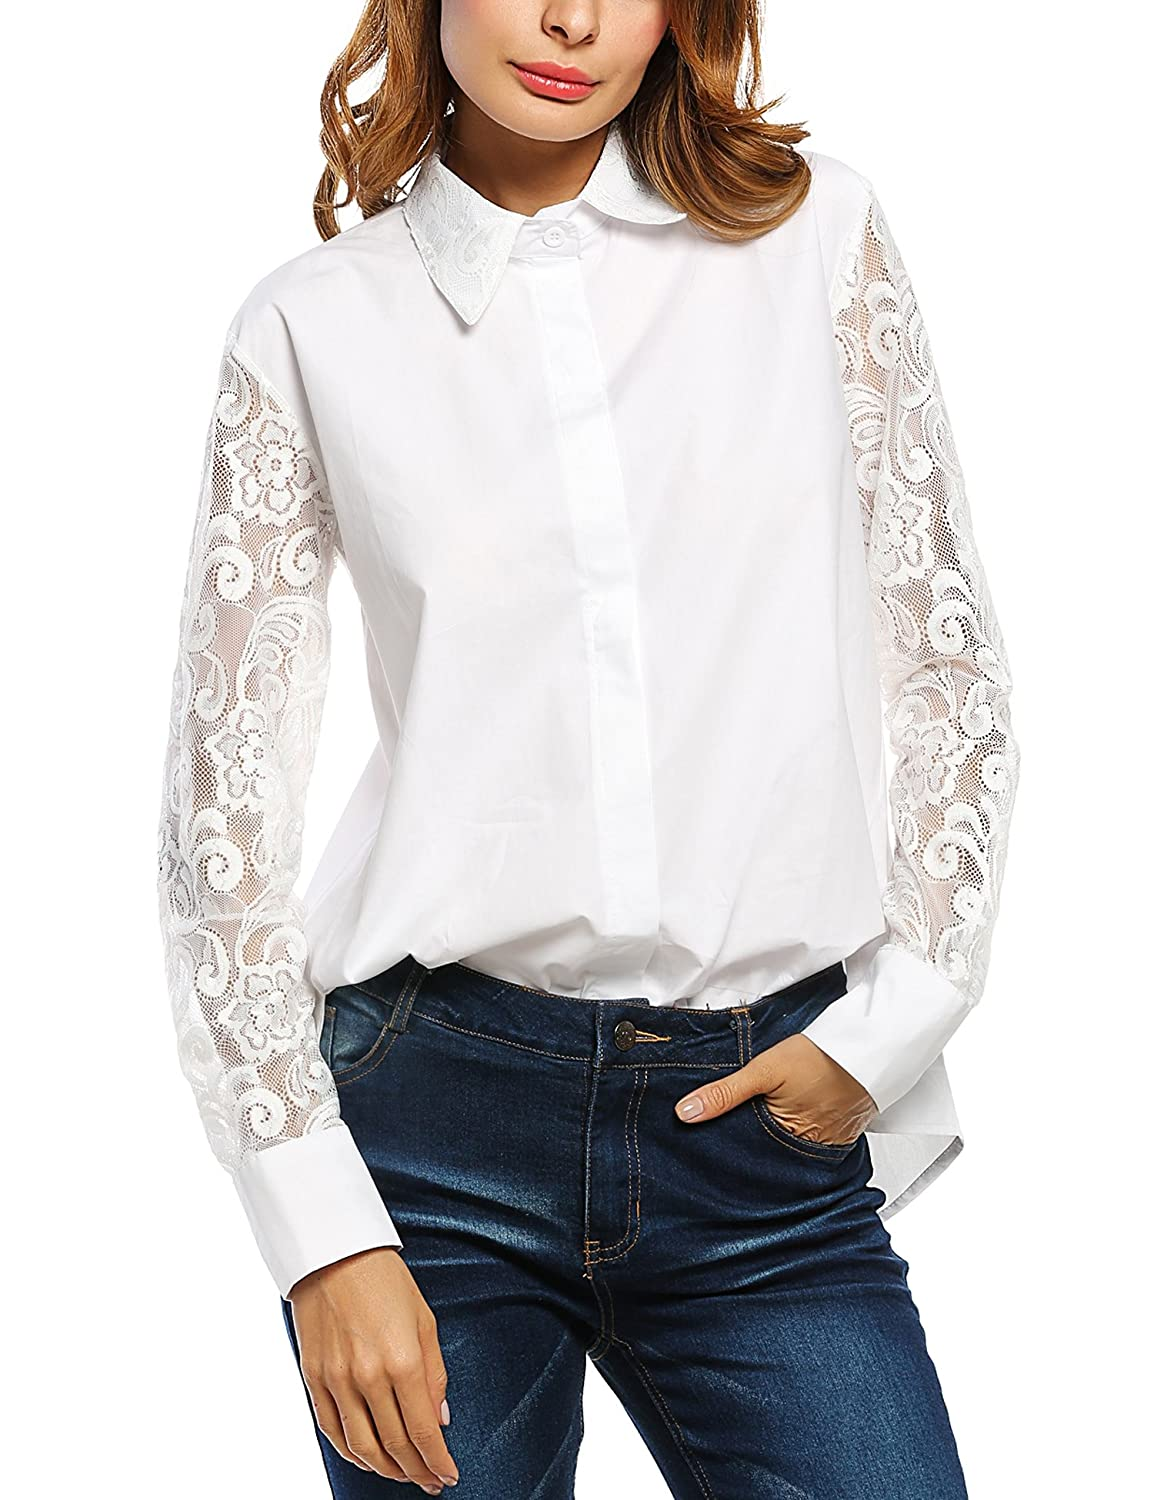 Victorian Inspired Womens Clothing Zeagoo Womens Button Down Shirt Long Sleeve Blouse Patchwork Lace Shirt Top $20.99 AT vintagedancer.com